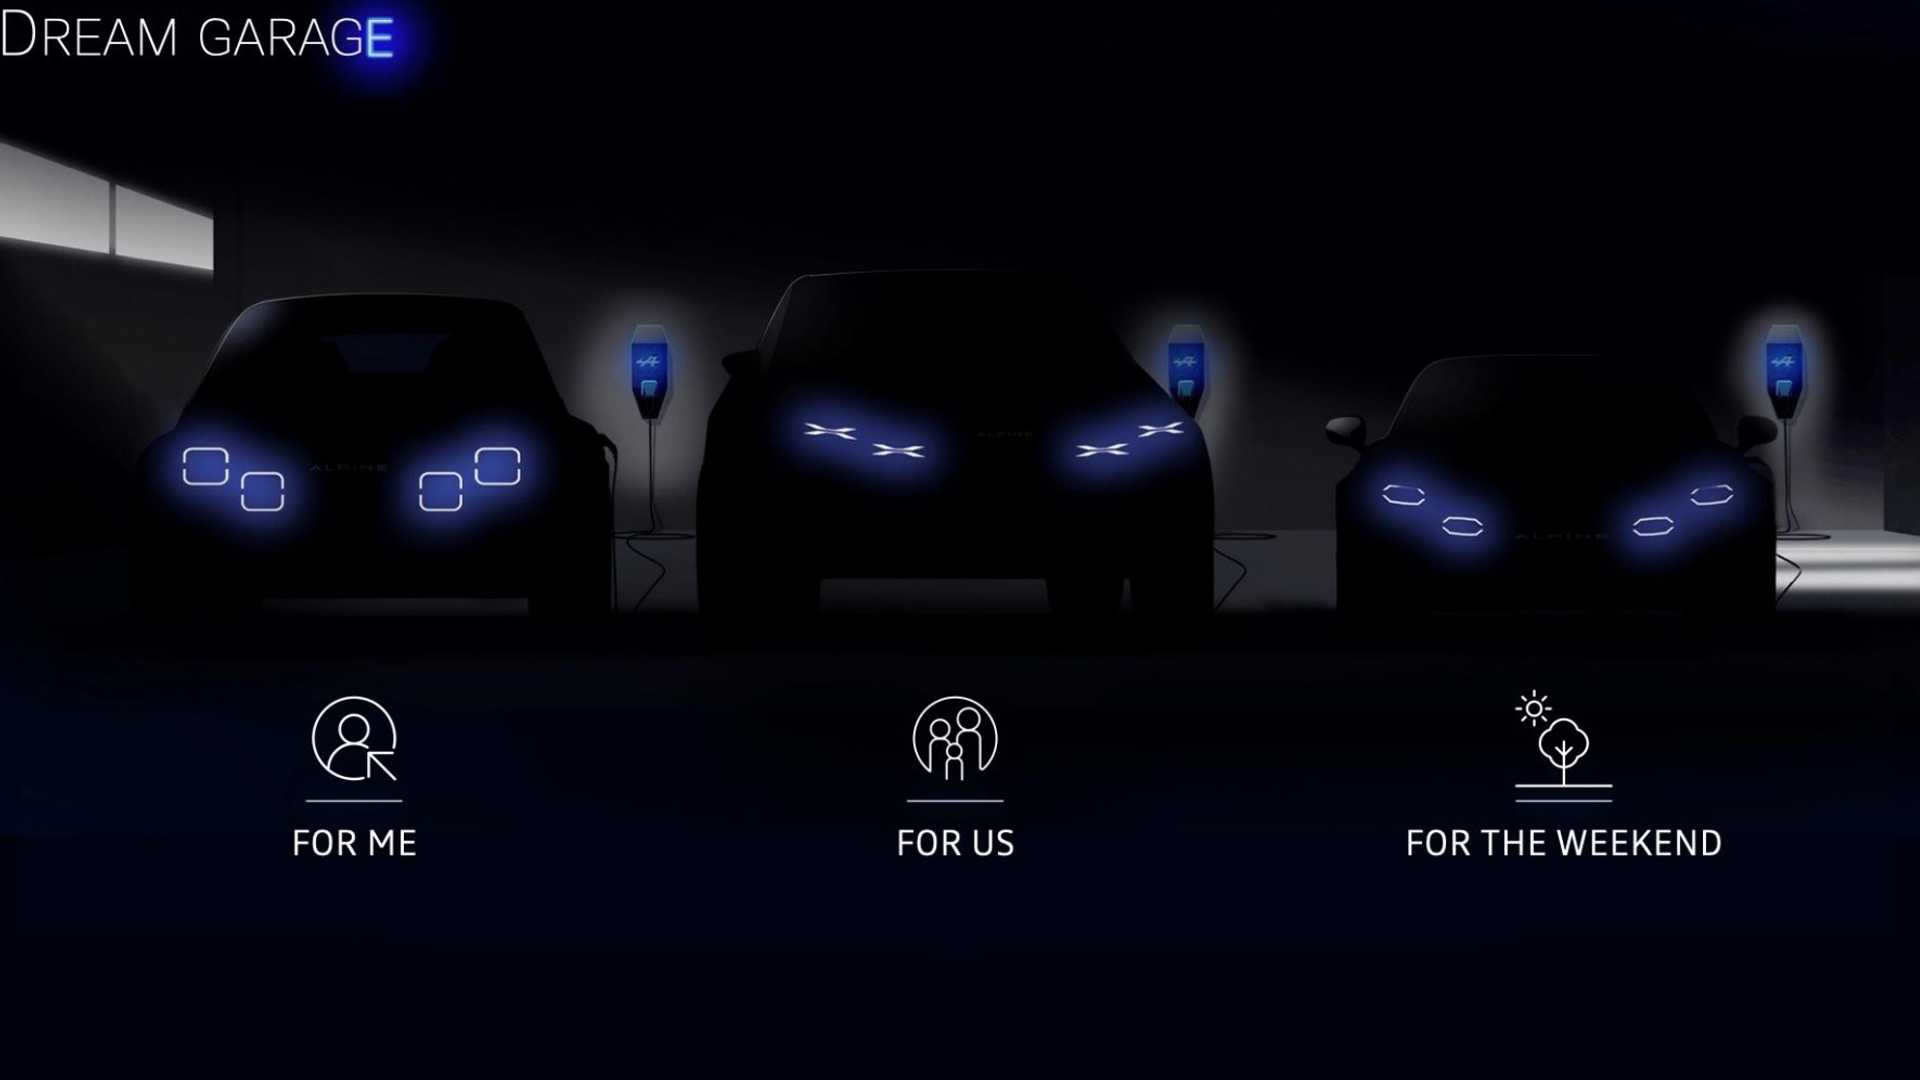 Alpine officially becoming an EV brand, teaming up with Lotus for electric sports car